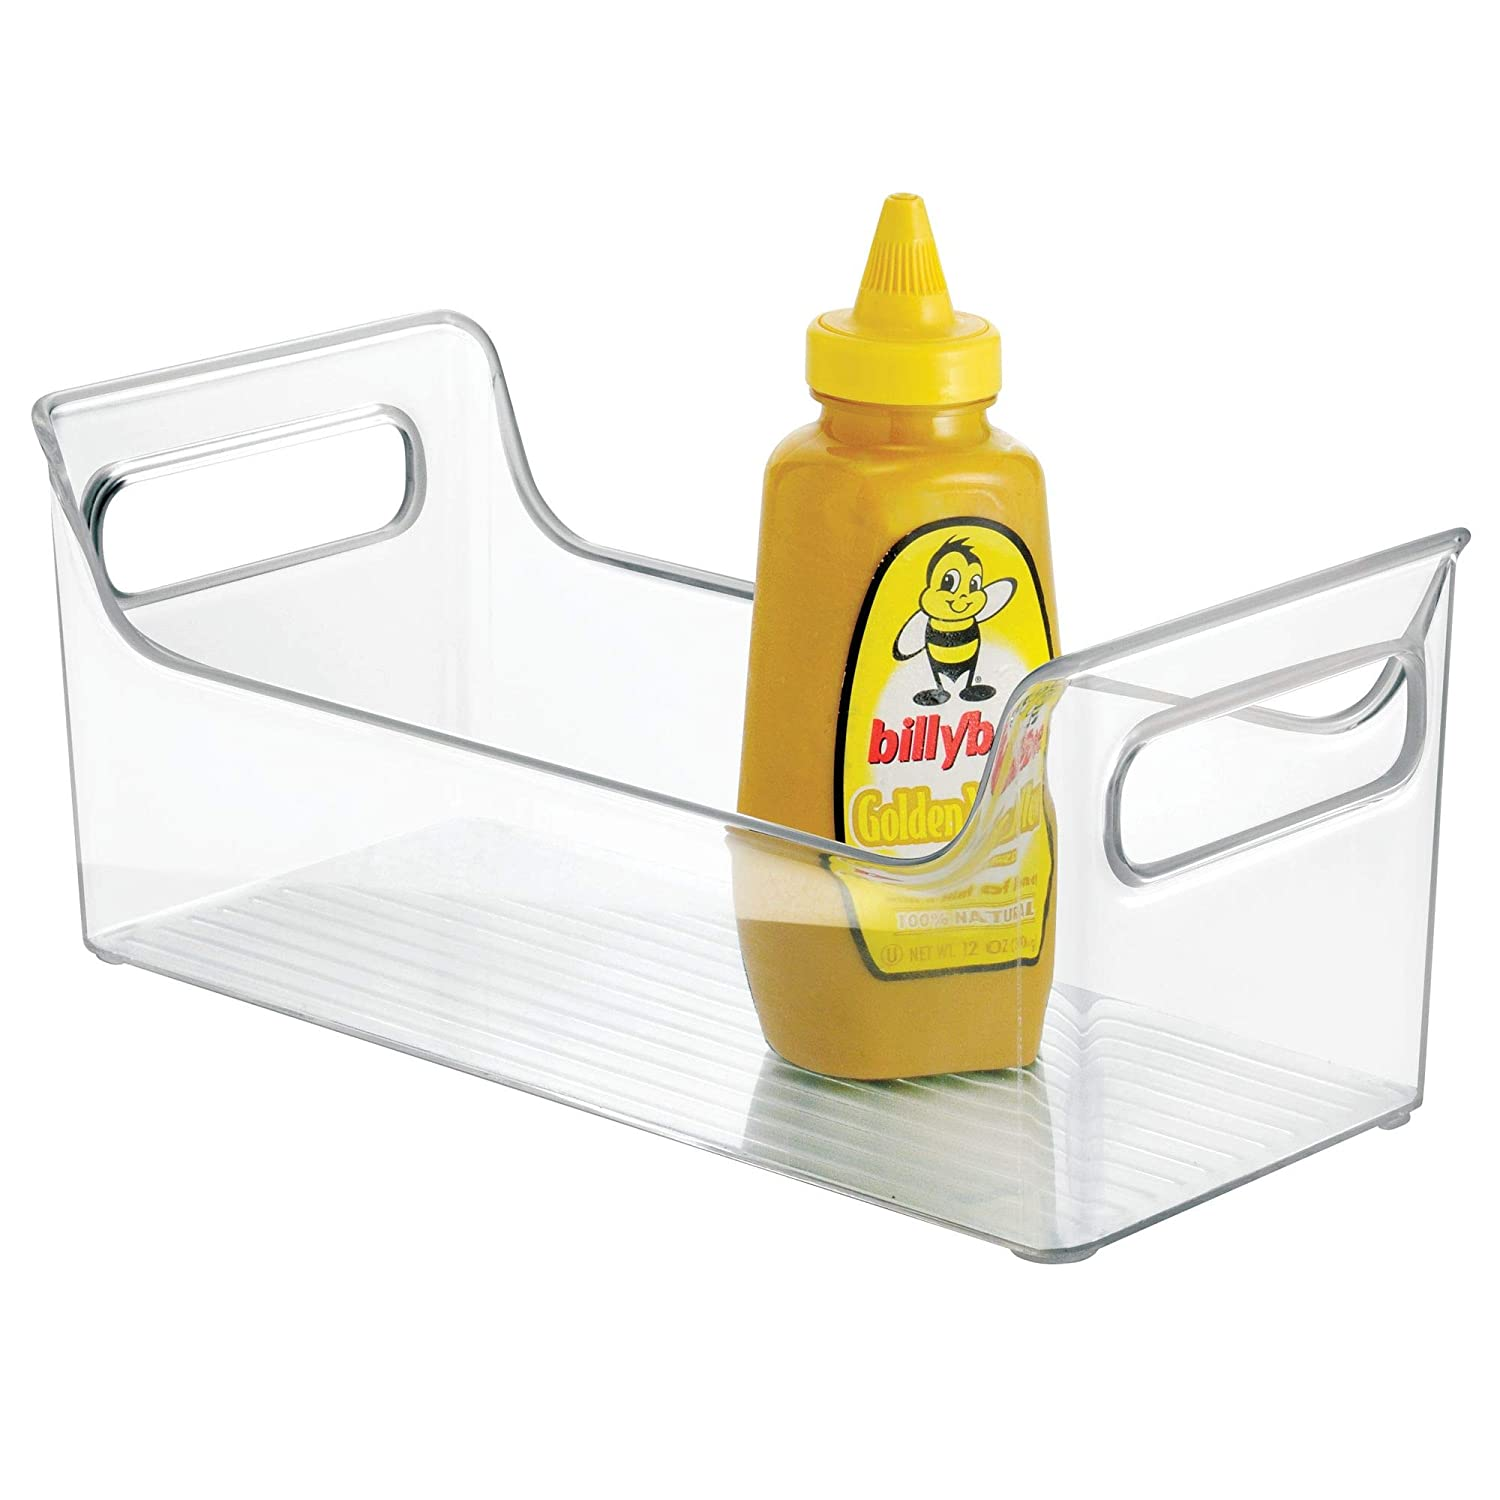 InterDesign Condiment Storage Container - Refrigerator or Freezer Food Organizer Bin, Clear